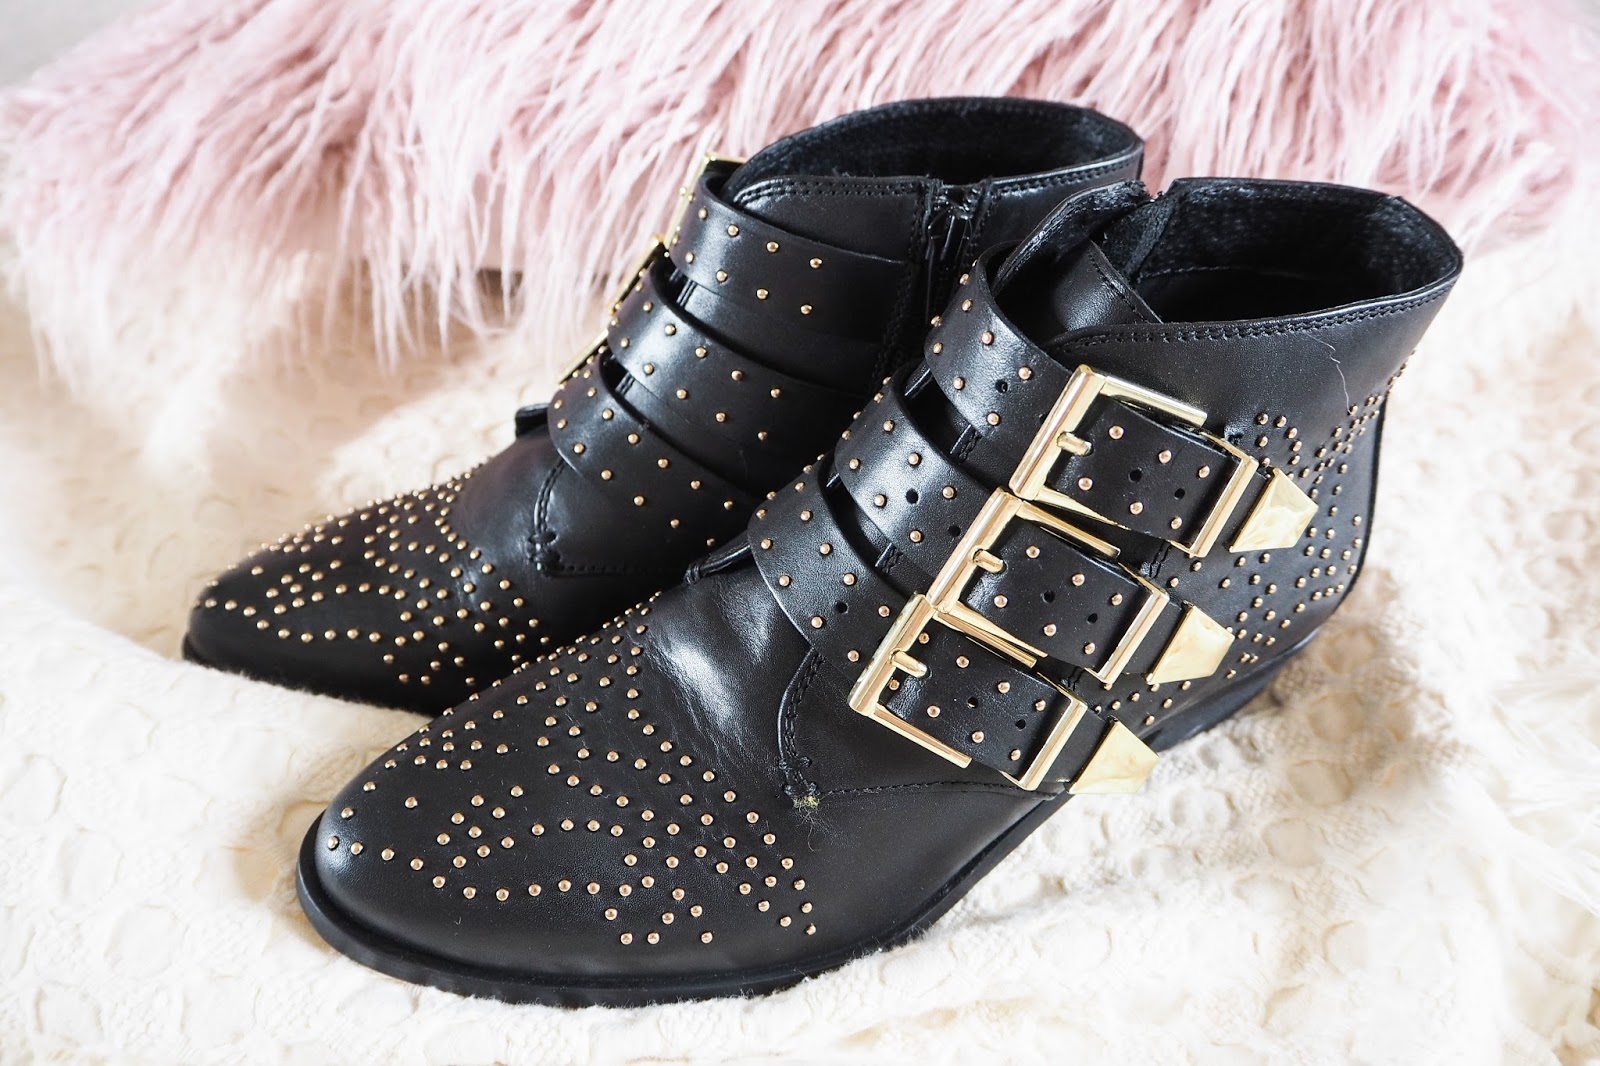 Buckles and studded detailing on the Office Lucky Charm boots